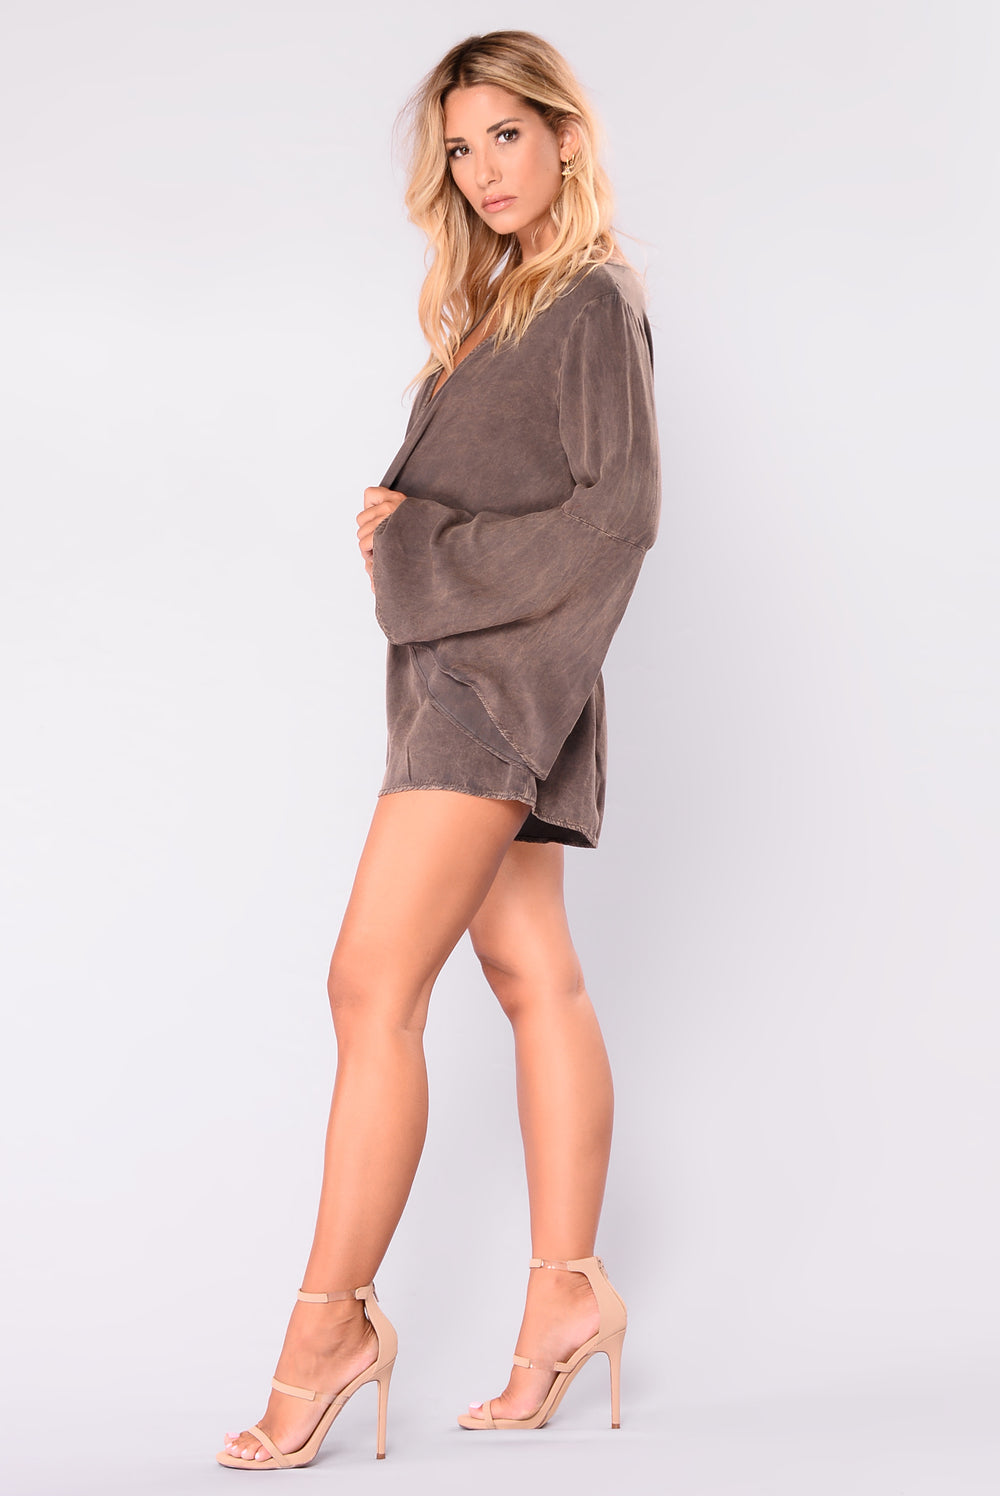 Laura Mineral Wash Romper - Brown